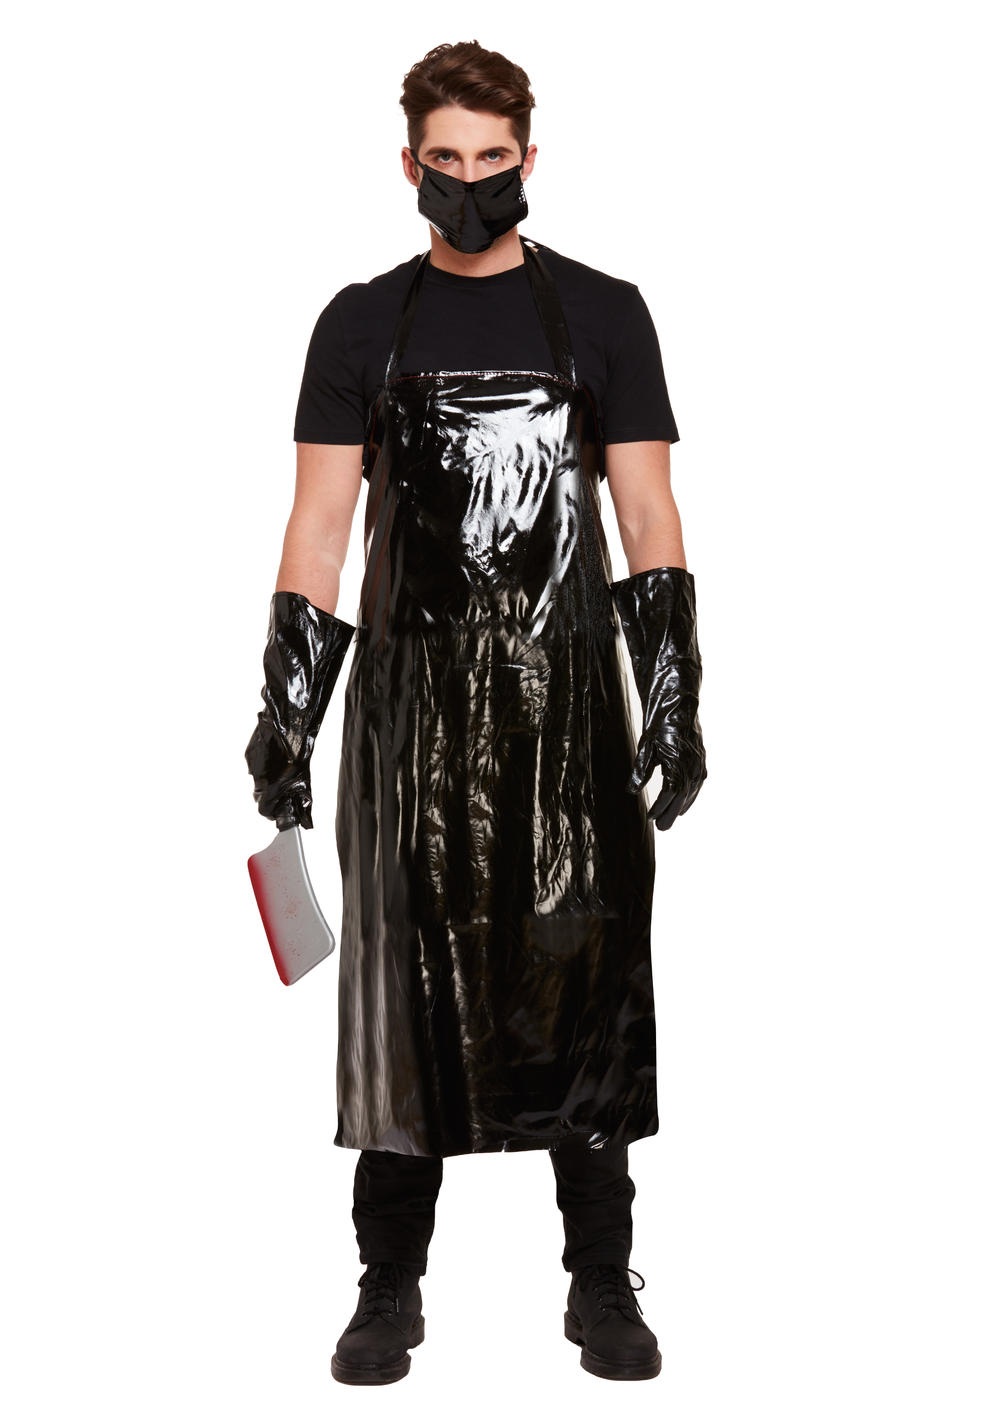 Scary Butcher Adult's Costume